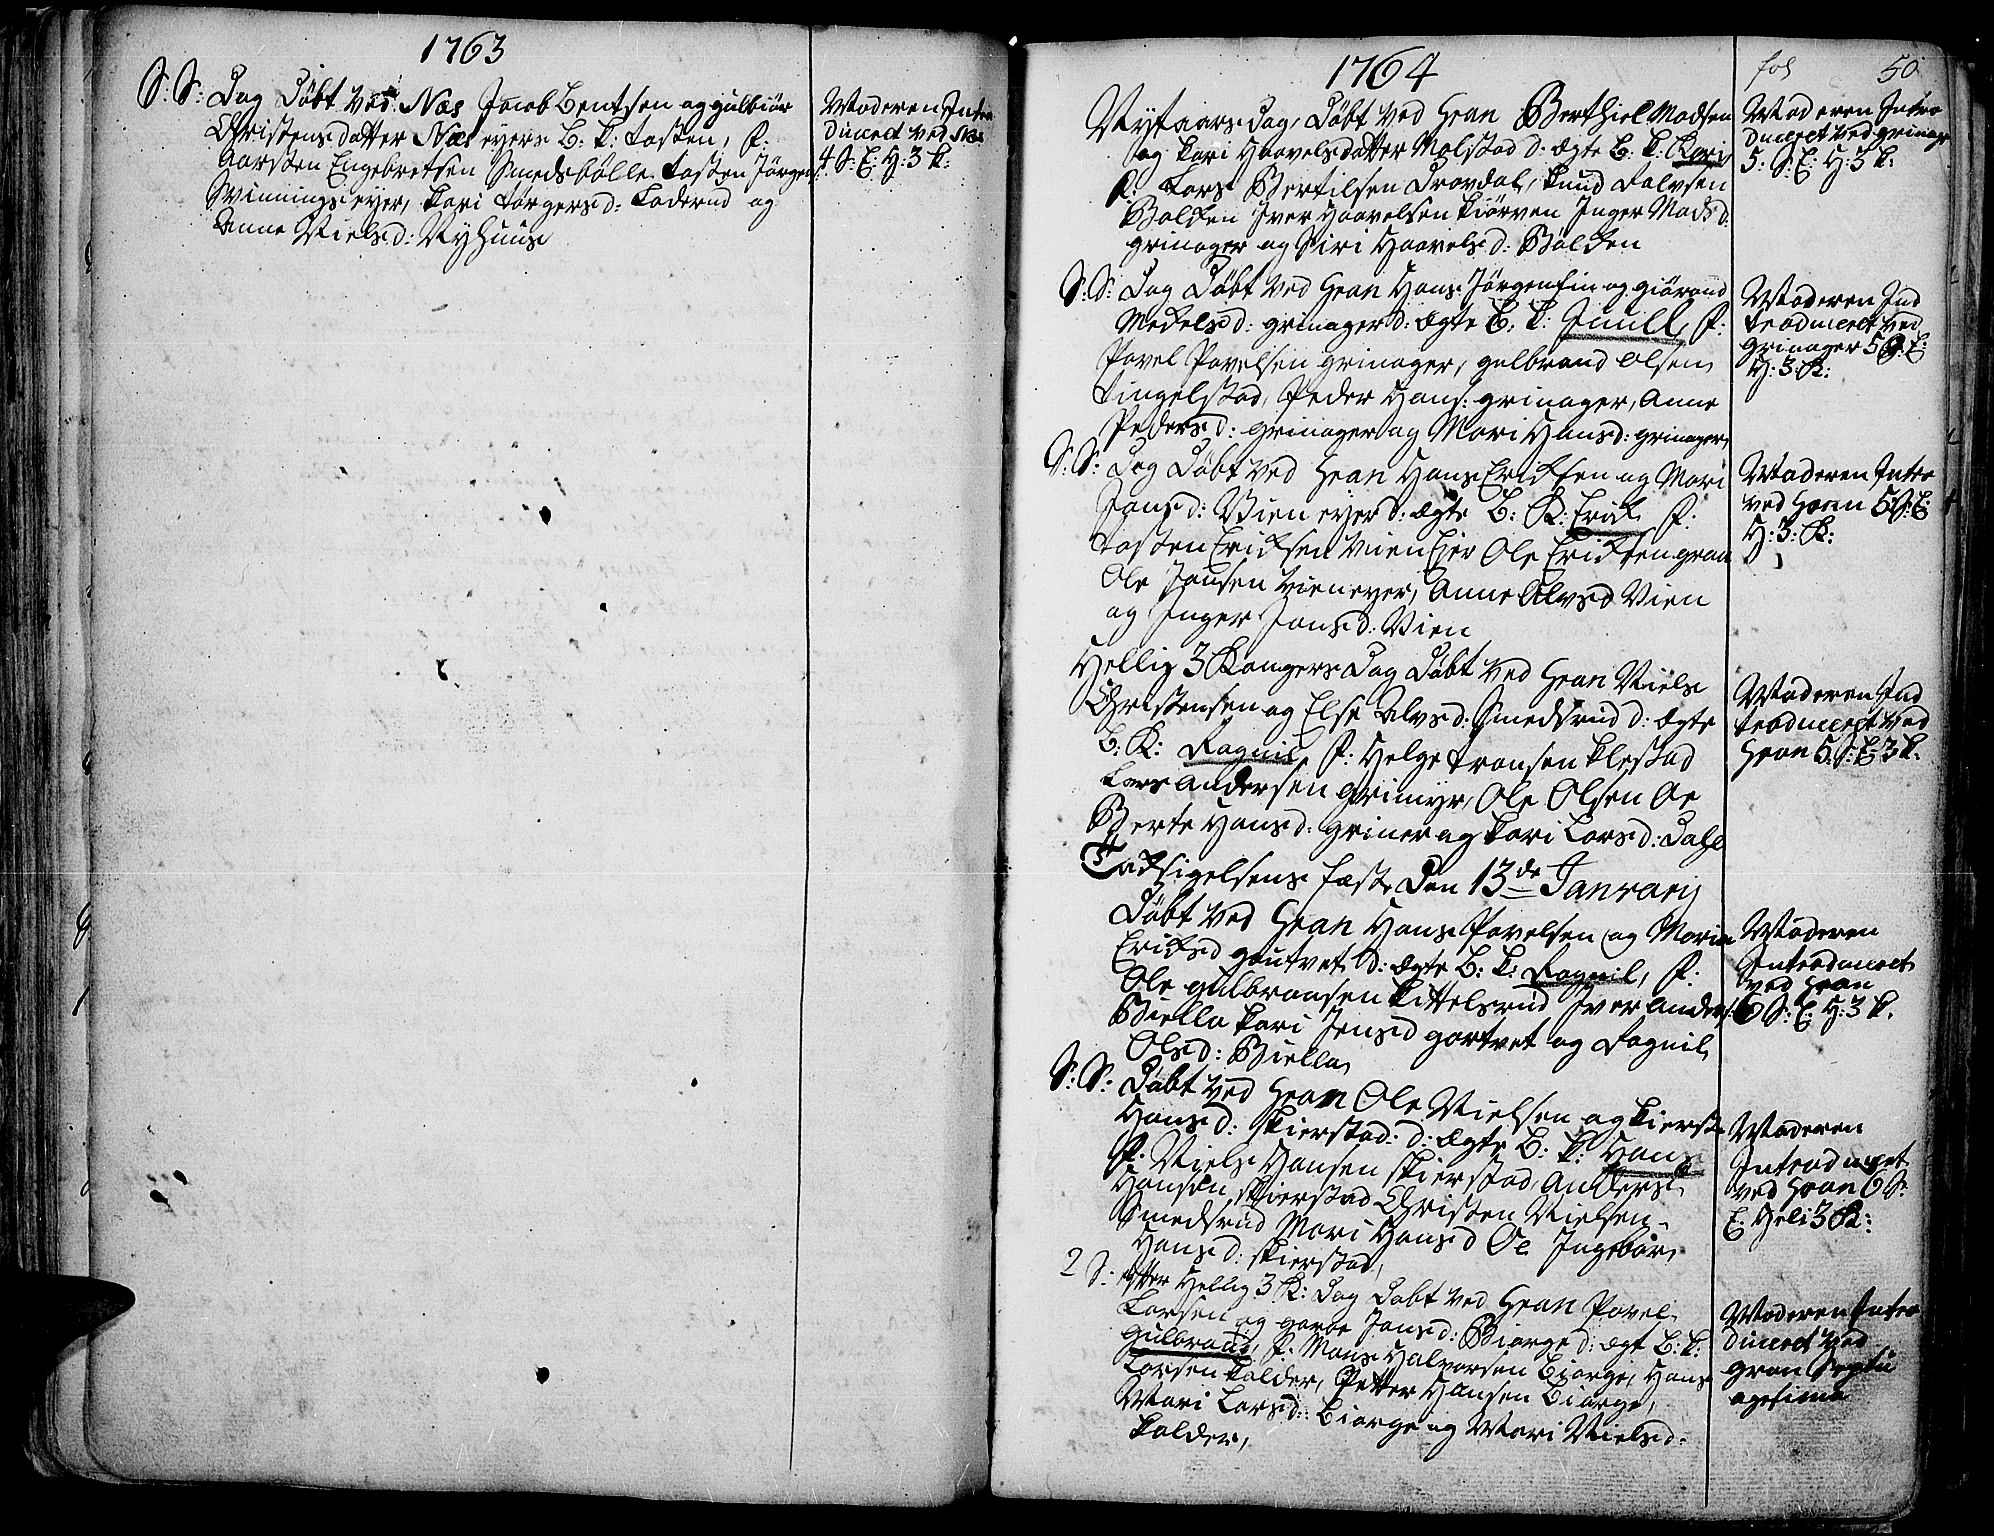 SAH, Gran prestekontor, Parish register (official) no. 4, 1759-1775, p. 50